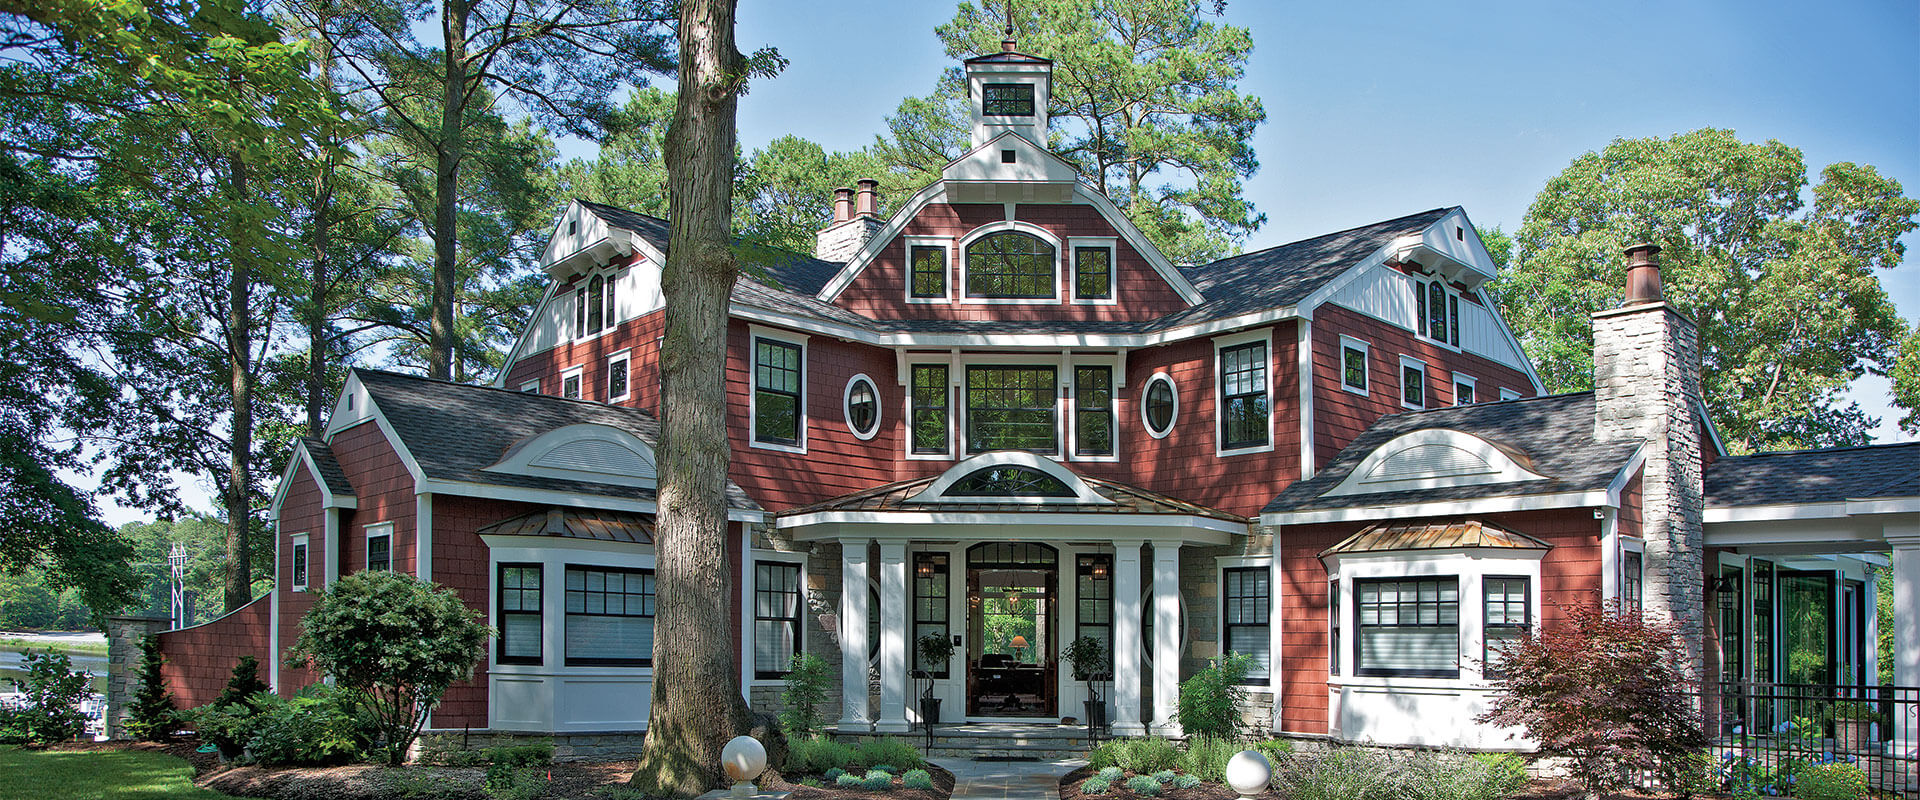 Red siding colors with white trim and wall paneling. White square columns. Light gray stone veneer and matching chimney. Black roofing shingles and metal accents. Black framed windows and doors.